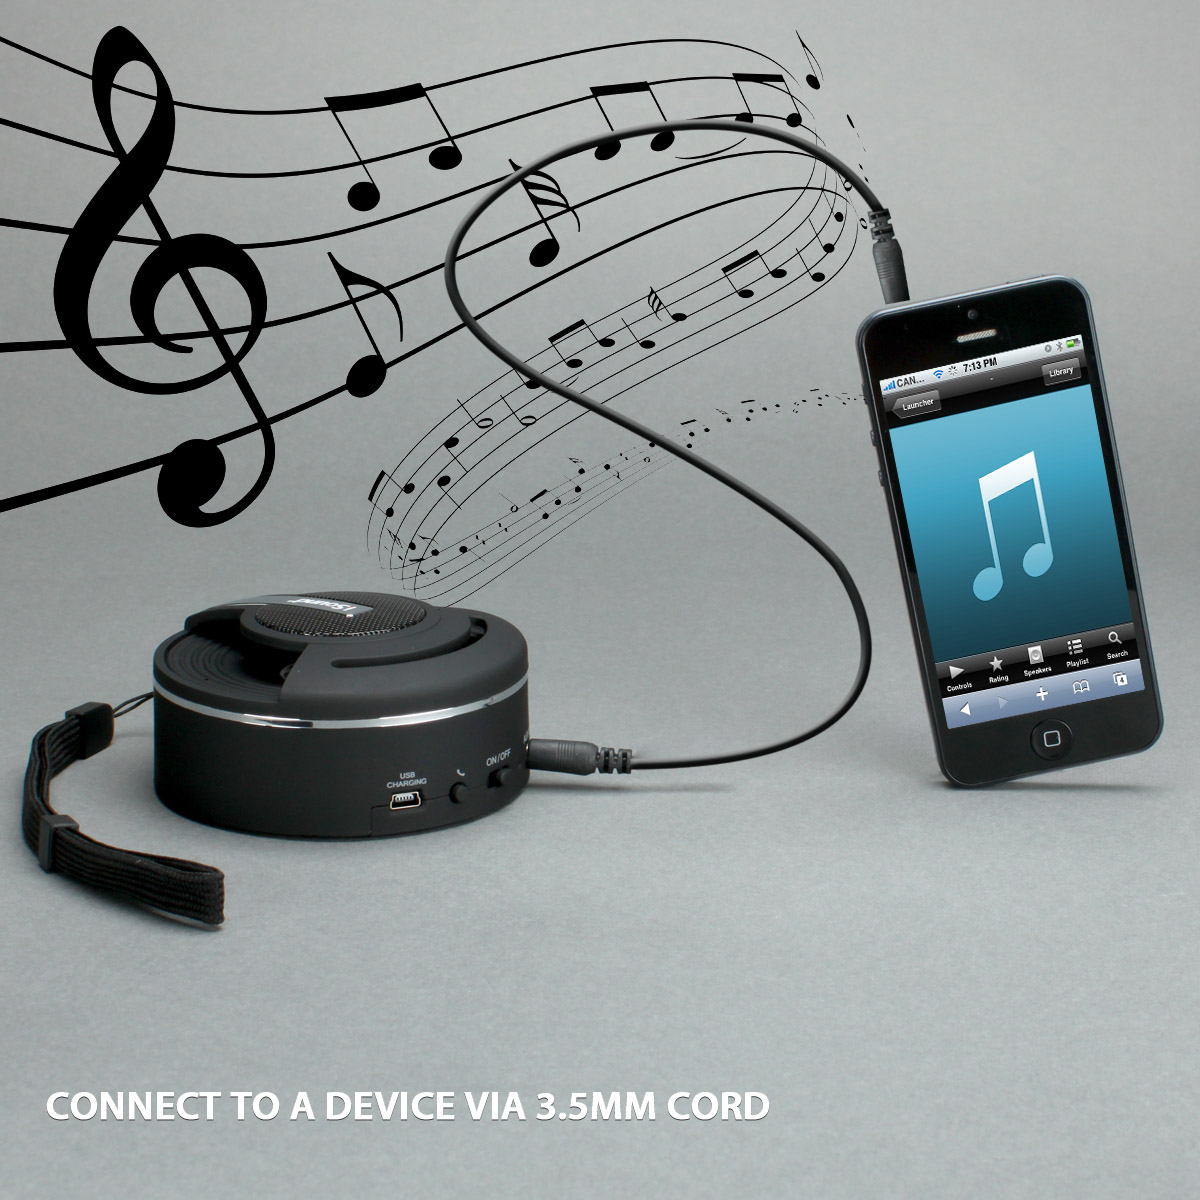 how to connect phone to multiple bluetooth speakers